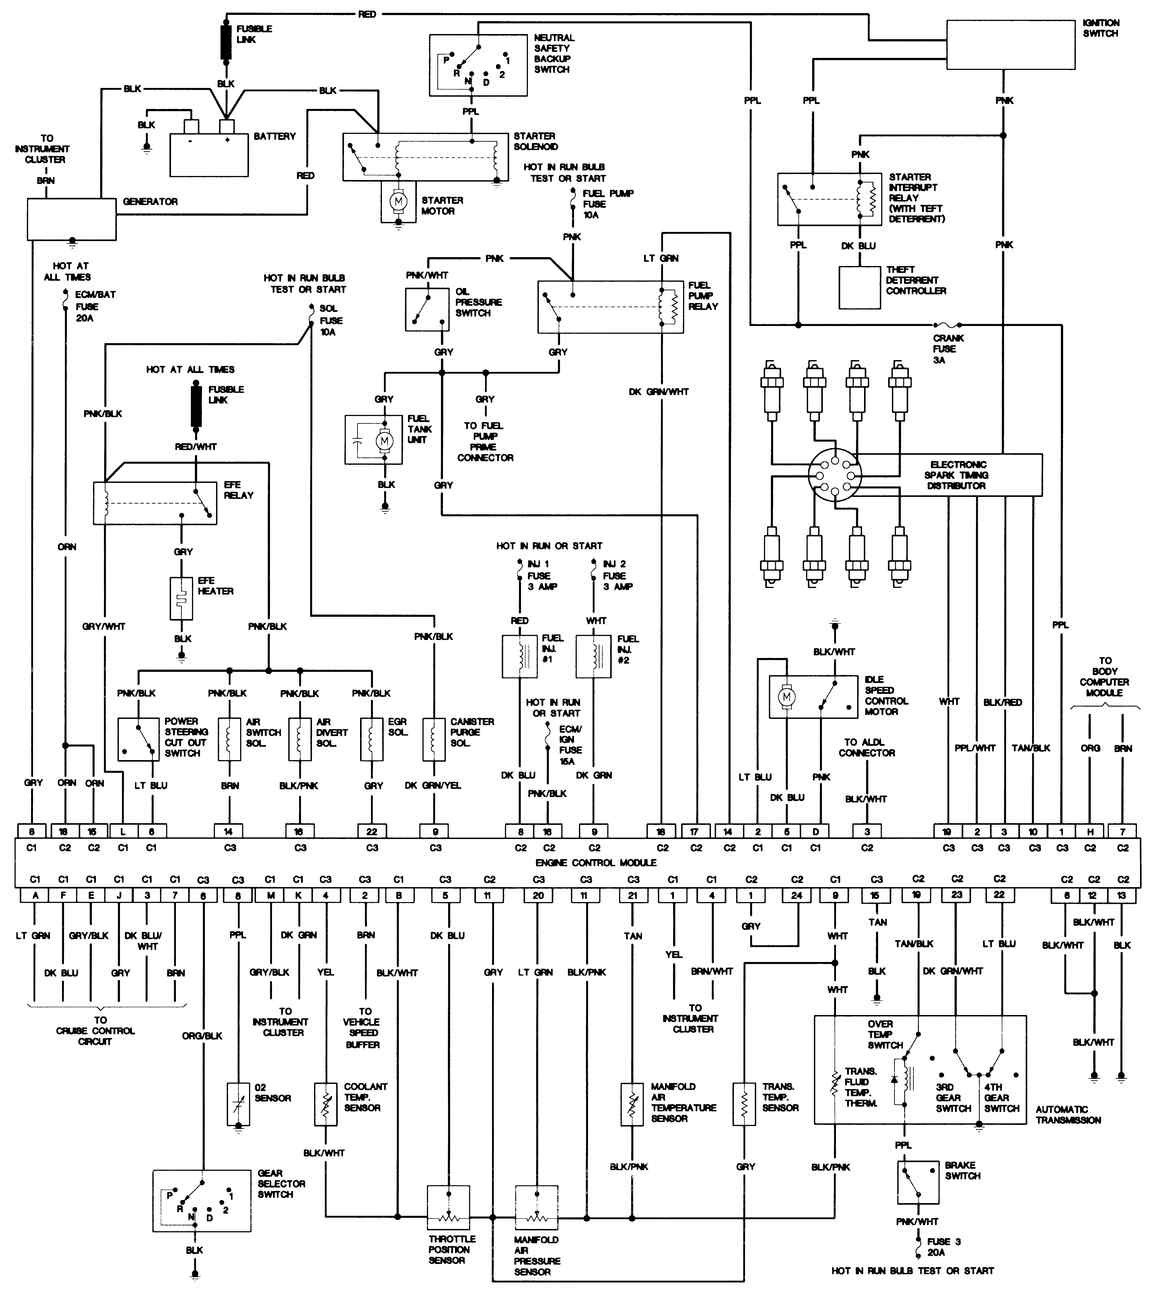 wiring diagram for 1992 cadillac fleetwood